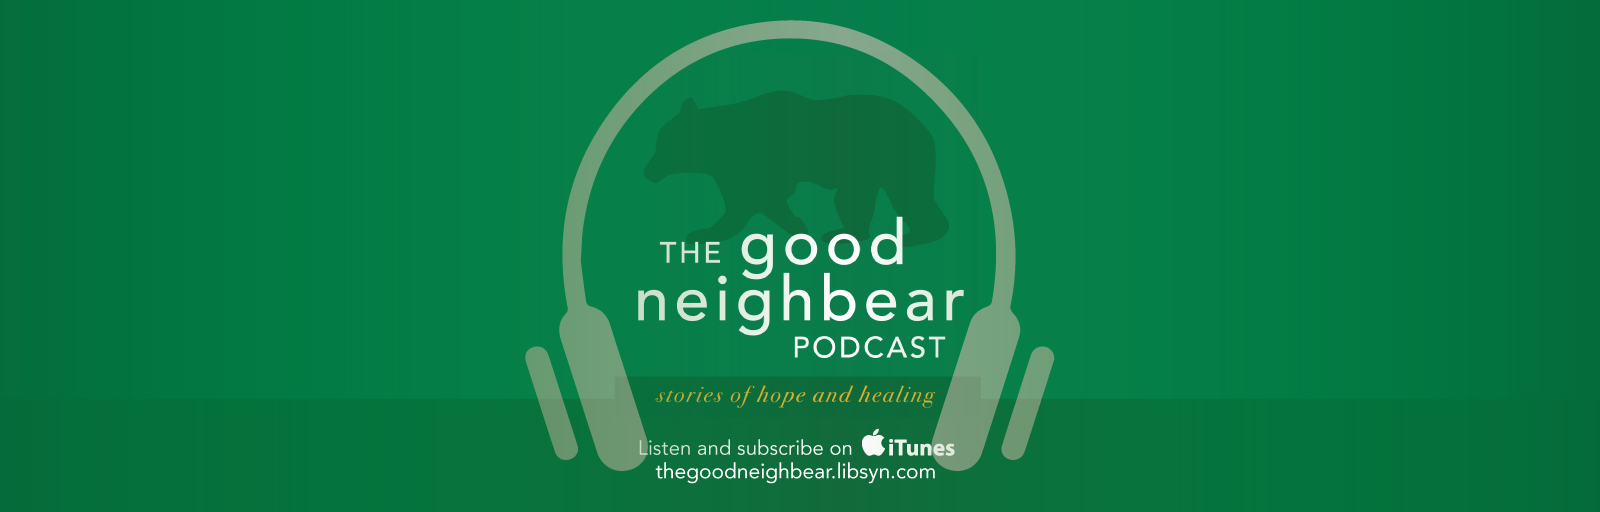 Good-Neighbear-Podcast-Diversity